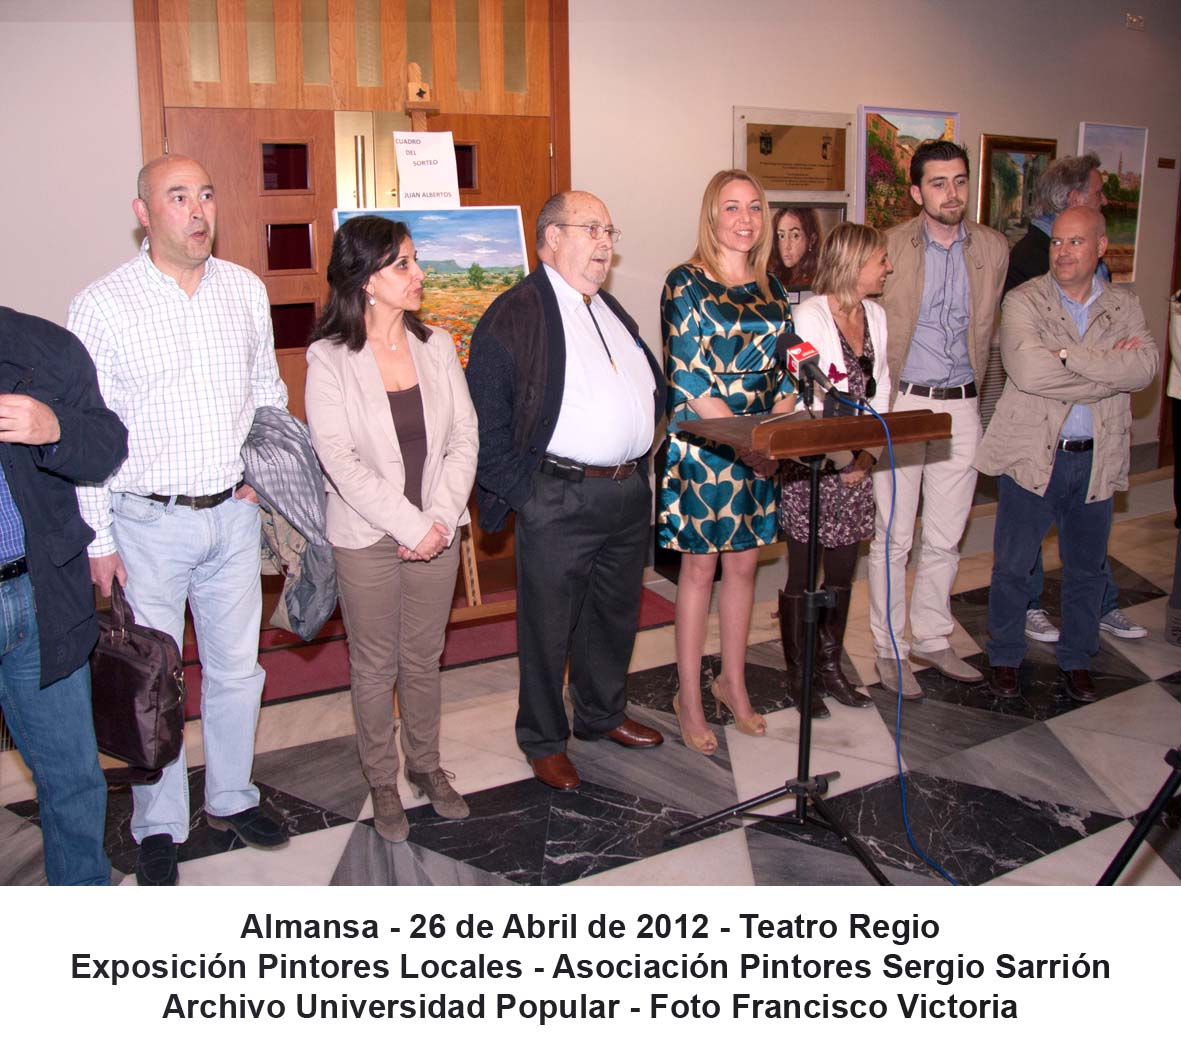 120426 ASOC PINTORES SERGIO SARRION 05